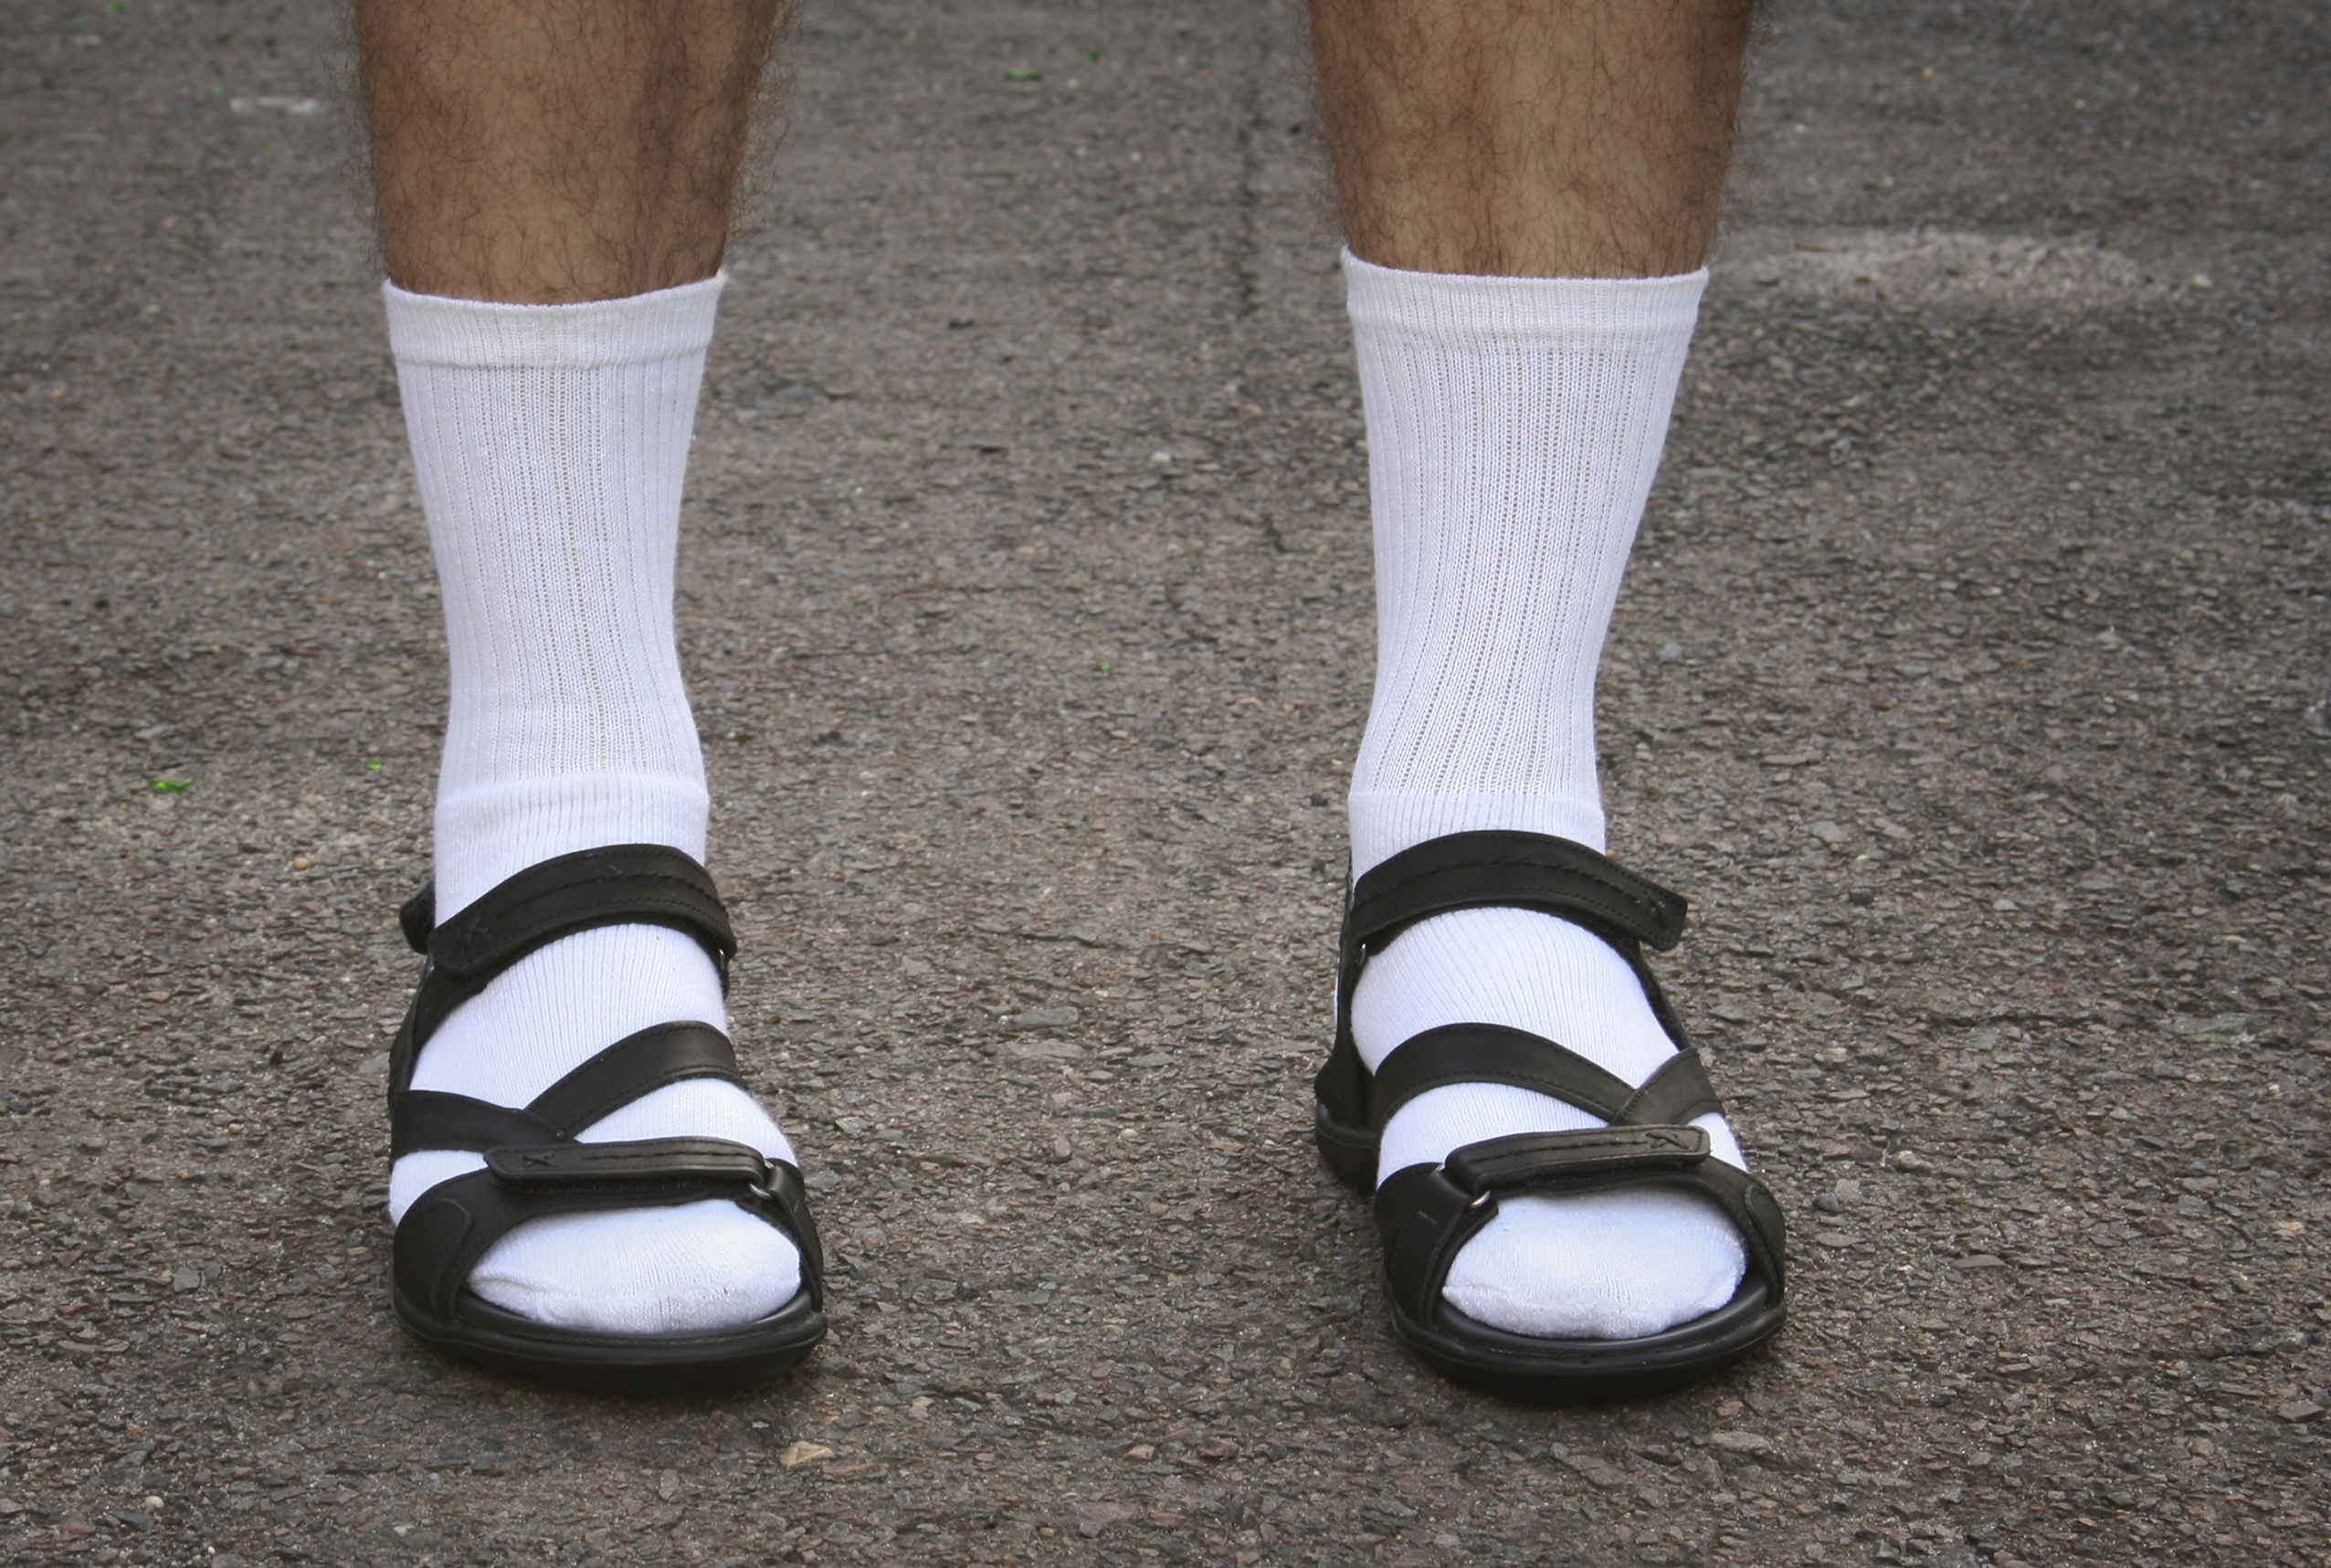 Socks and sandals to demonstrate lack of style